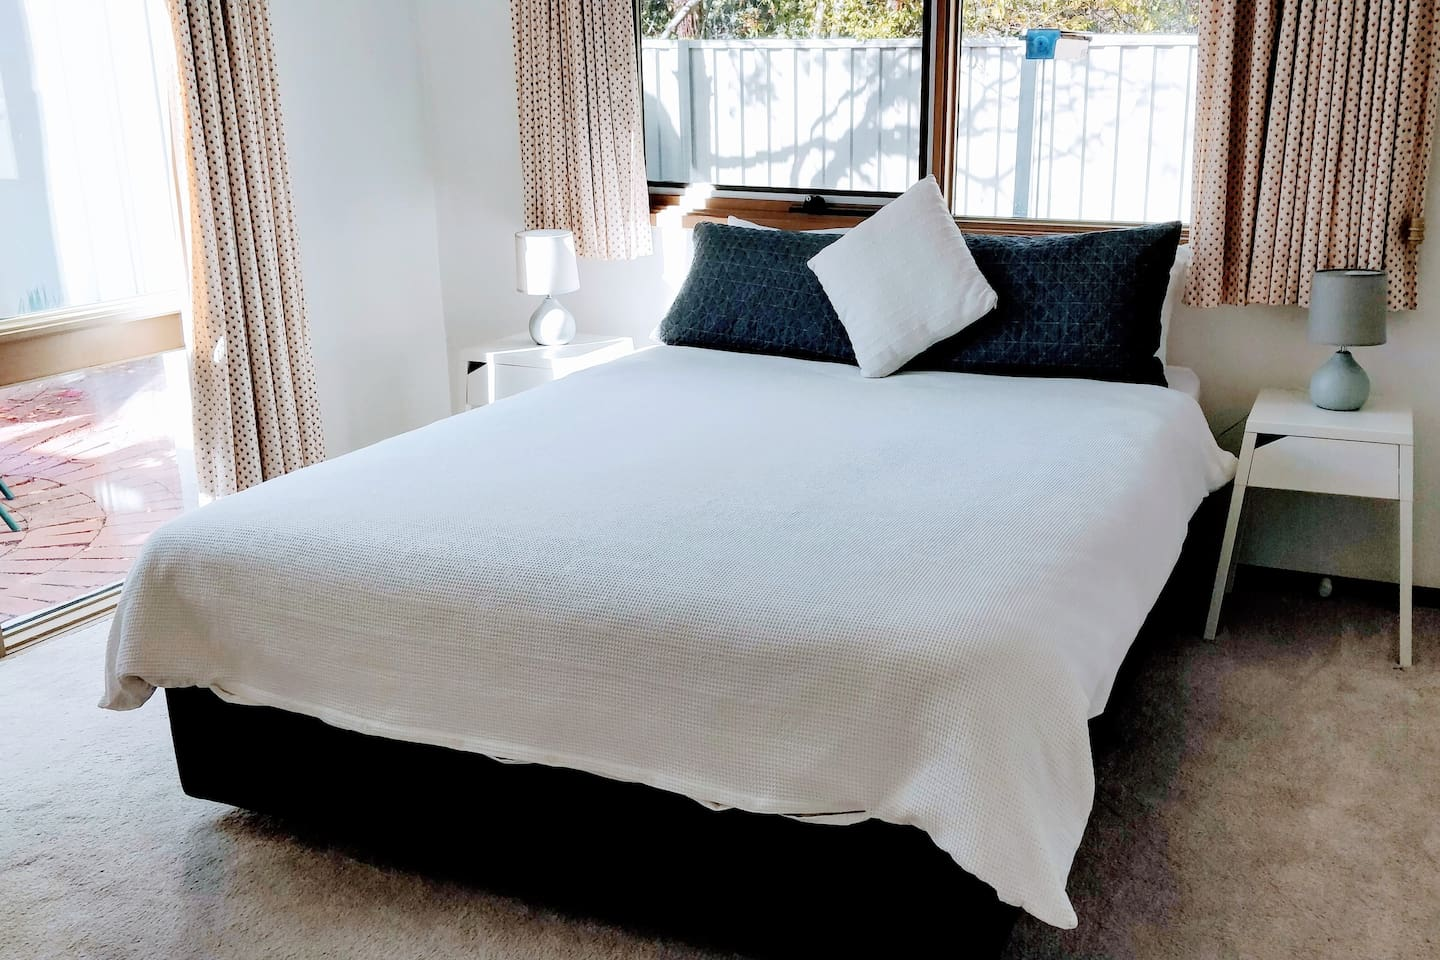 your bed with 100% cotton bed linen, the option of high or medium profile pillows and your own private bathroom with shower, bathtub and separate toilet